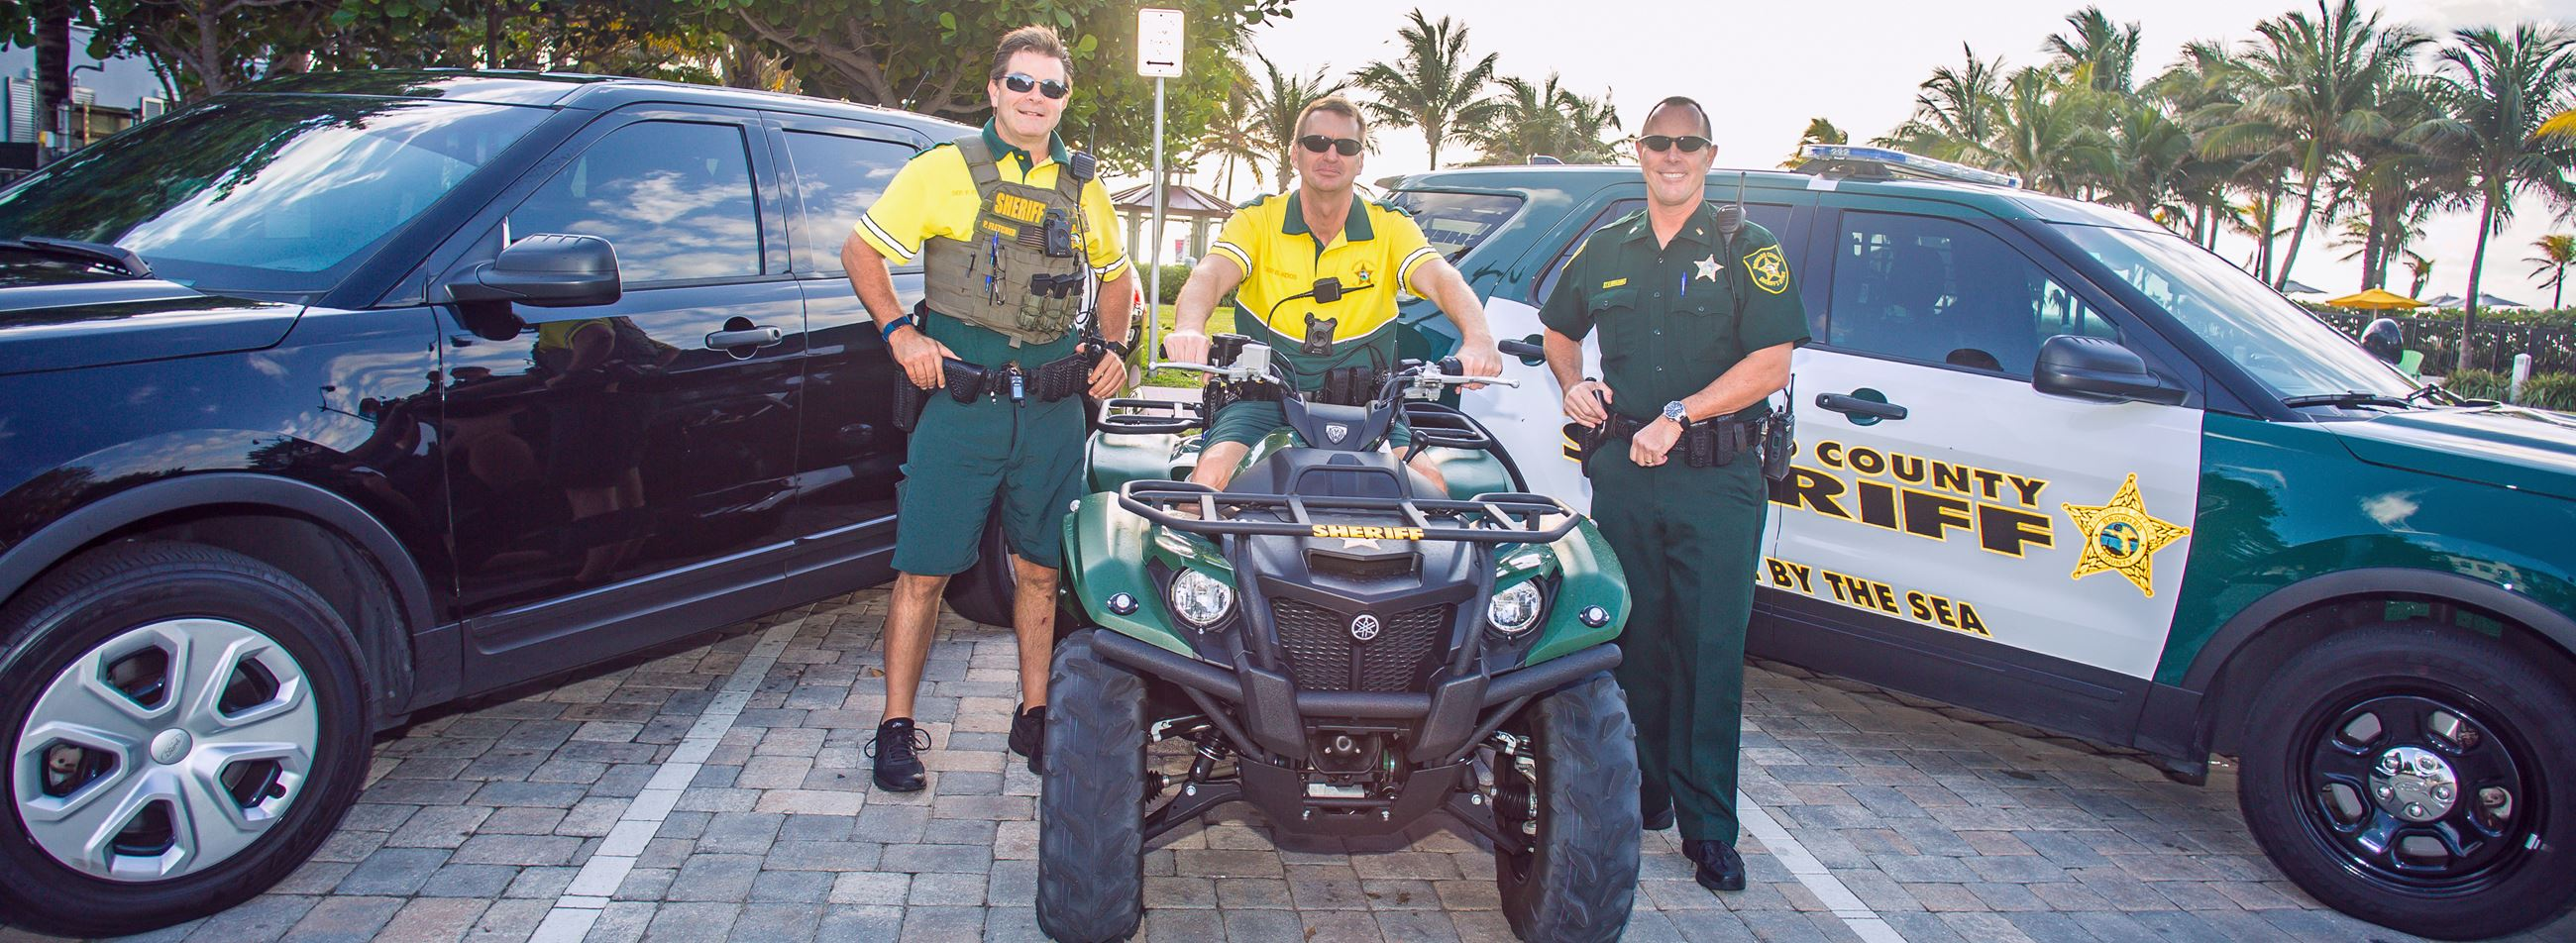 New BSO Vehicle